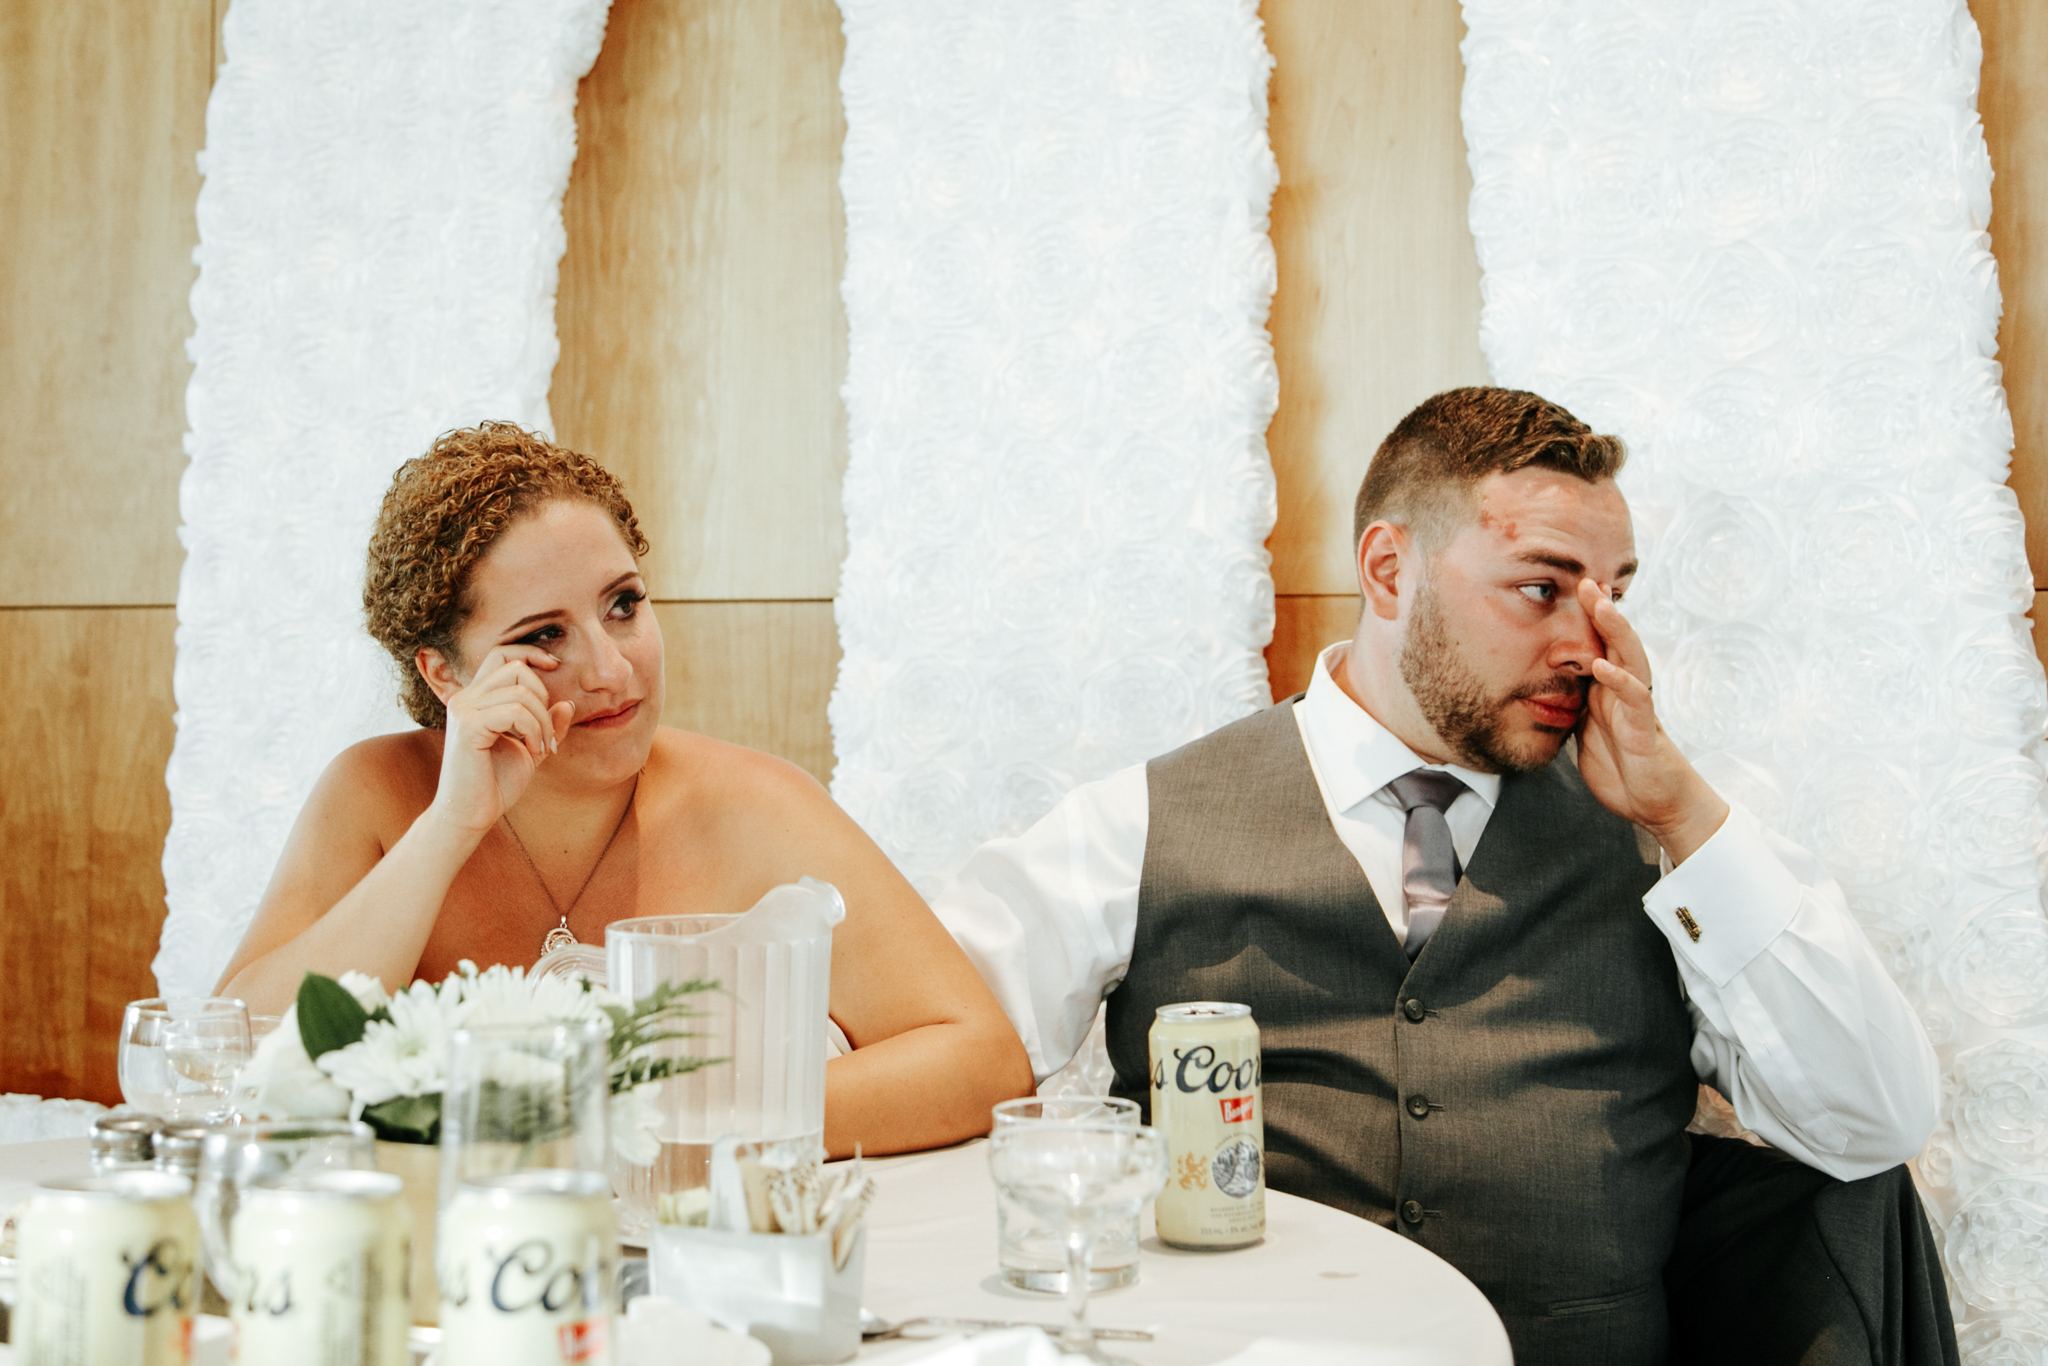 lethbridge-wedding-photographer-love-and-be-loved-photography-trent-danielle-galt-reception-picture-image-photo-191.jpg